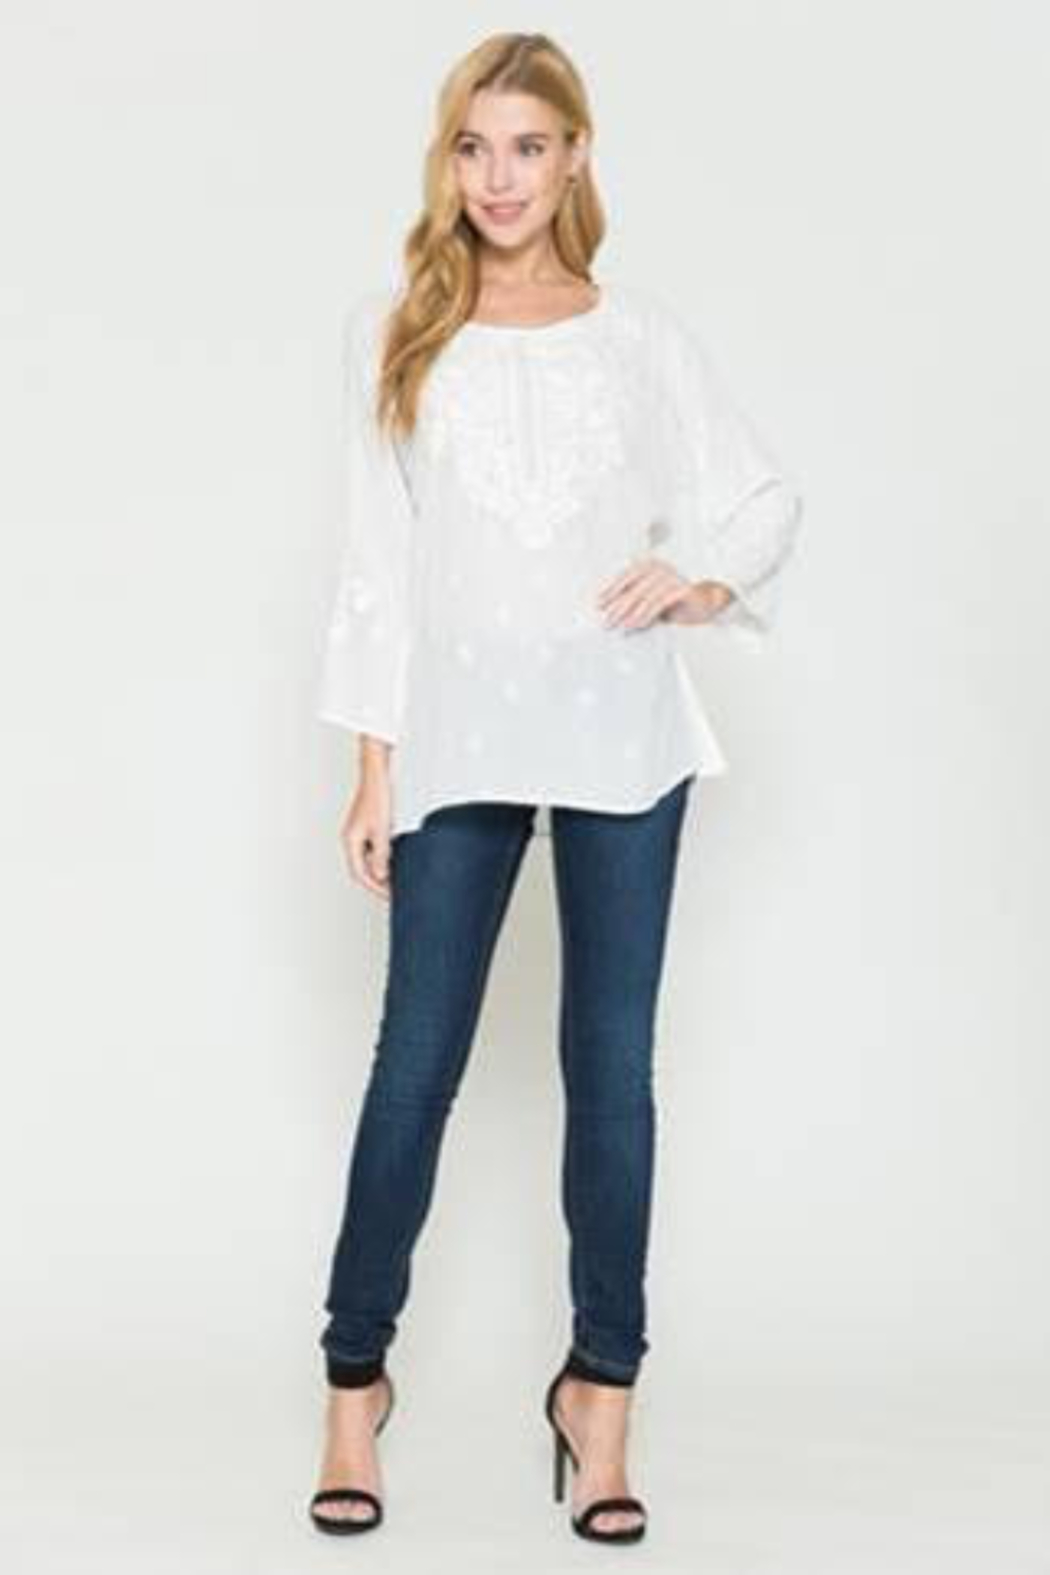 Apparel Love 3/4 Sleeve White Tunic with Embroidery - Main Image